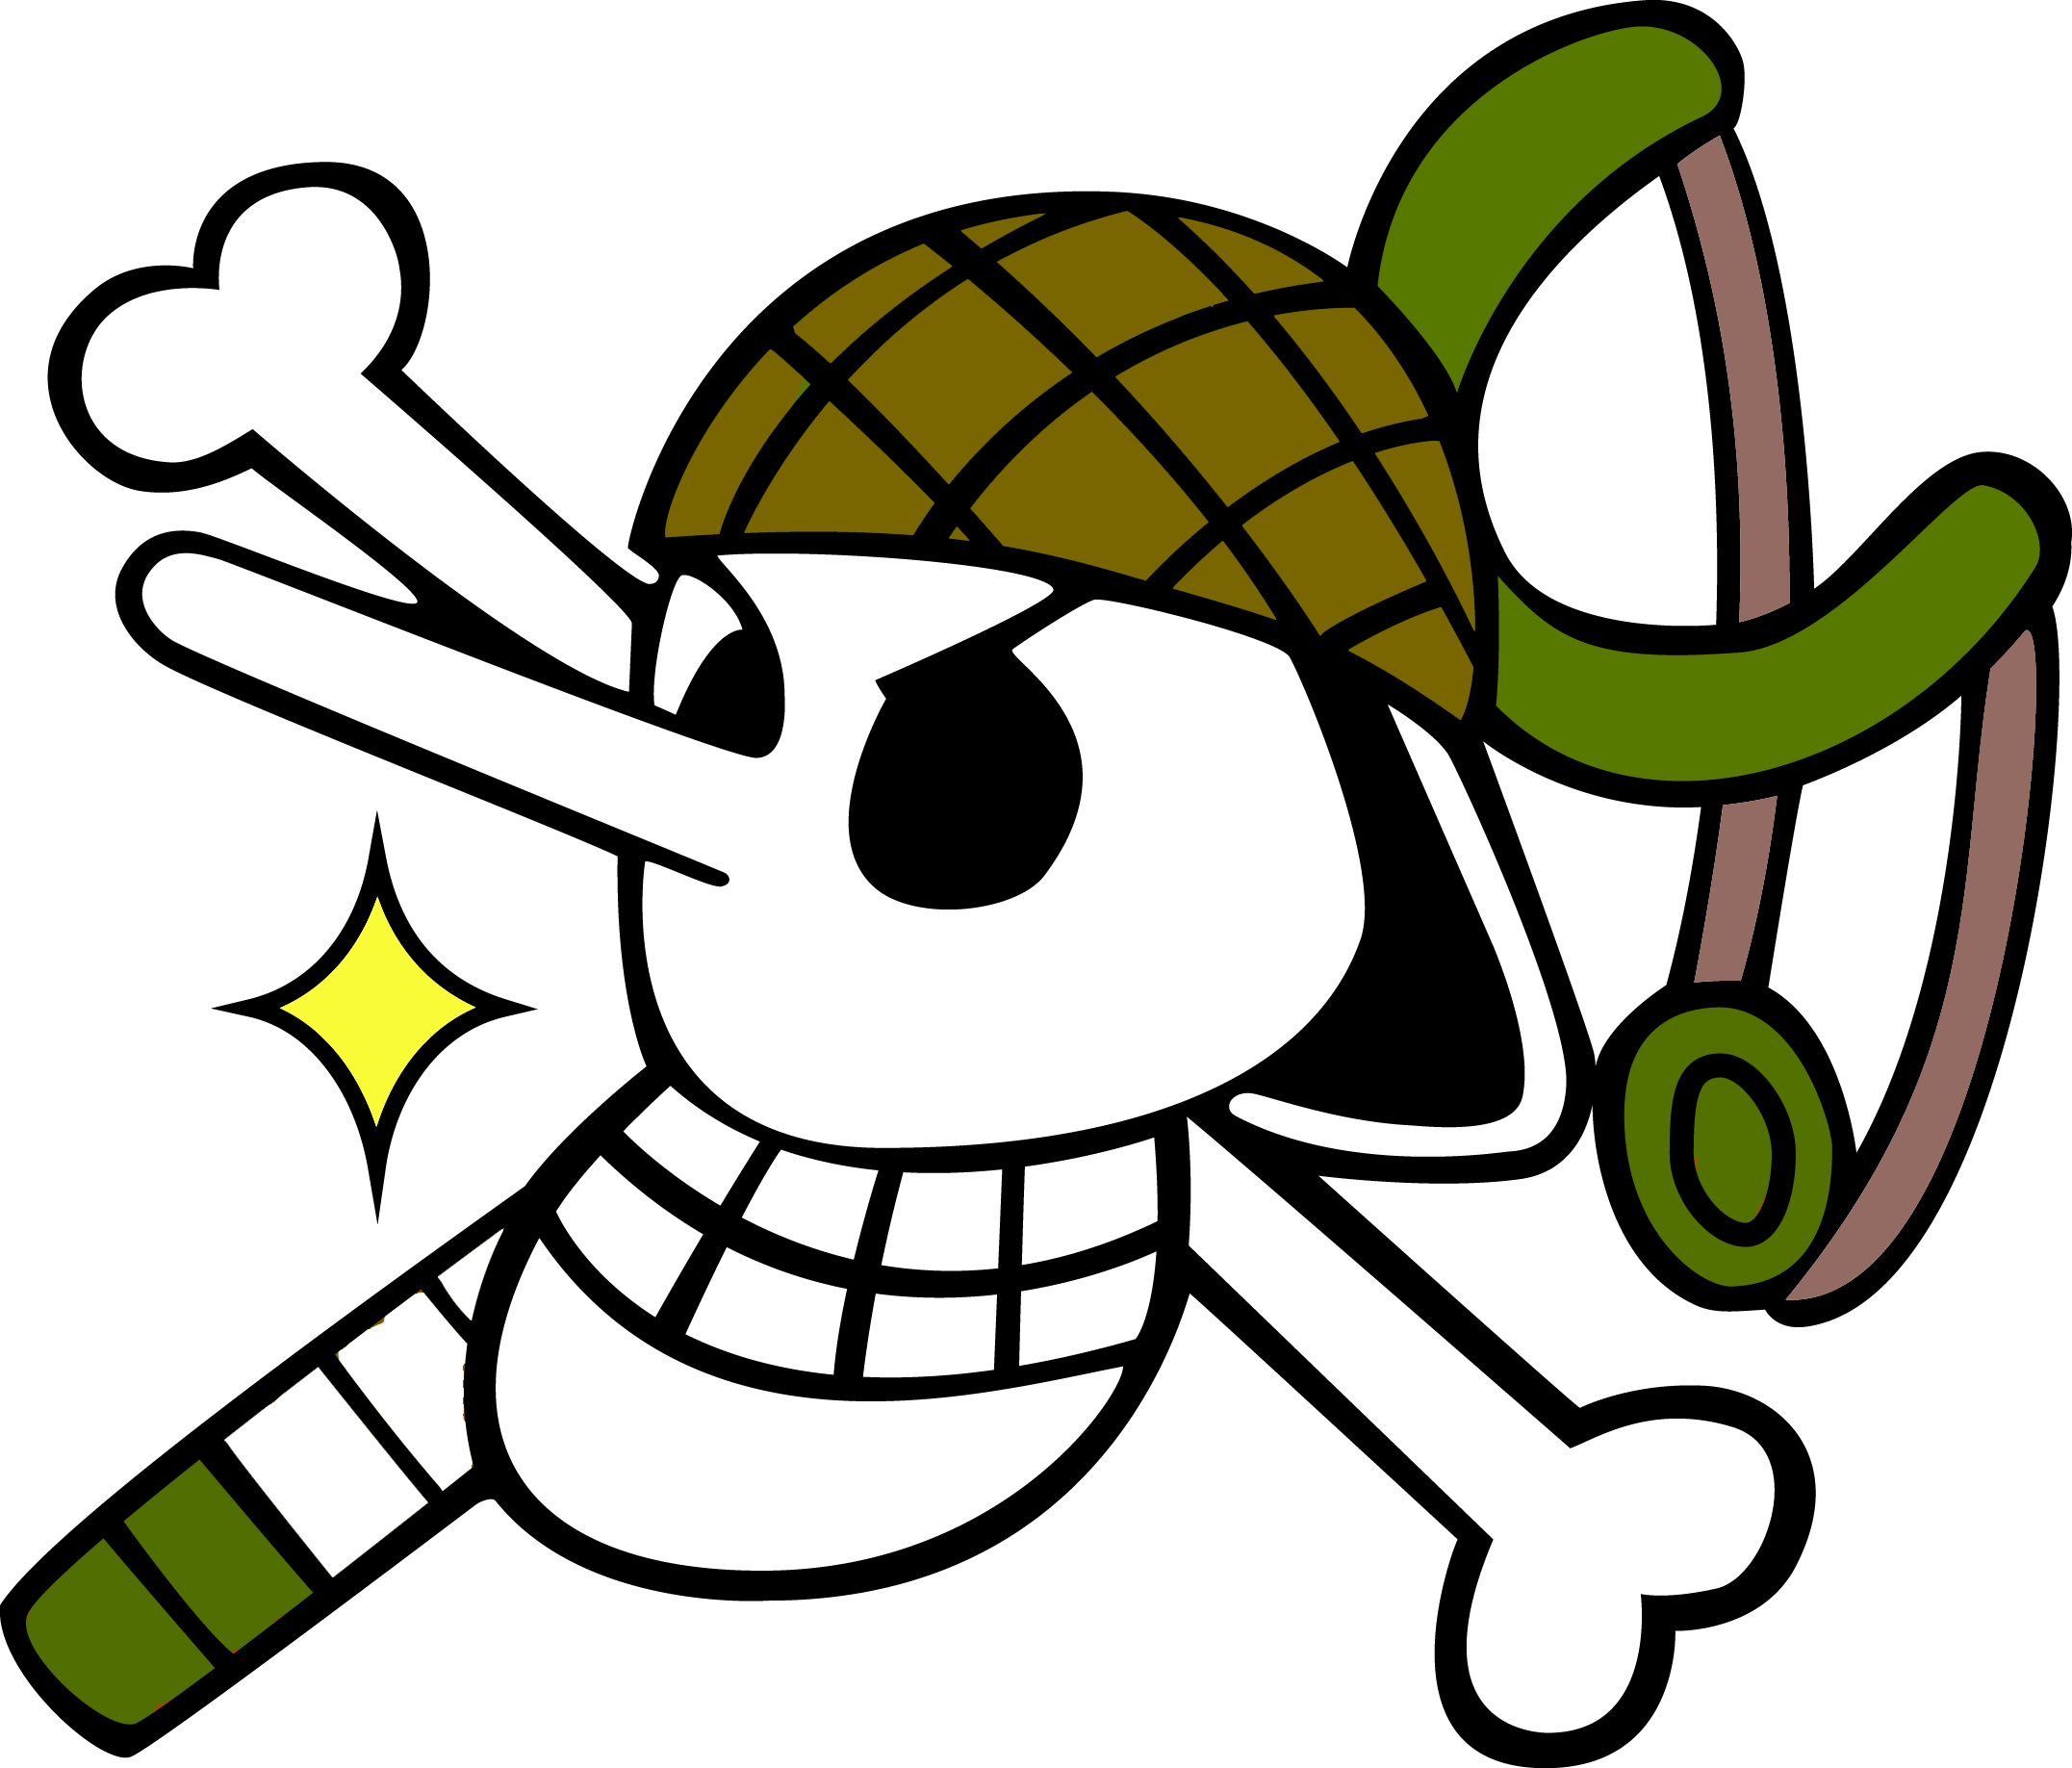 Usopp Flag - One Piece by Sanji-Devastador on DeviantArt